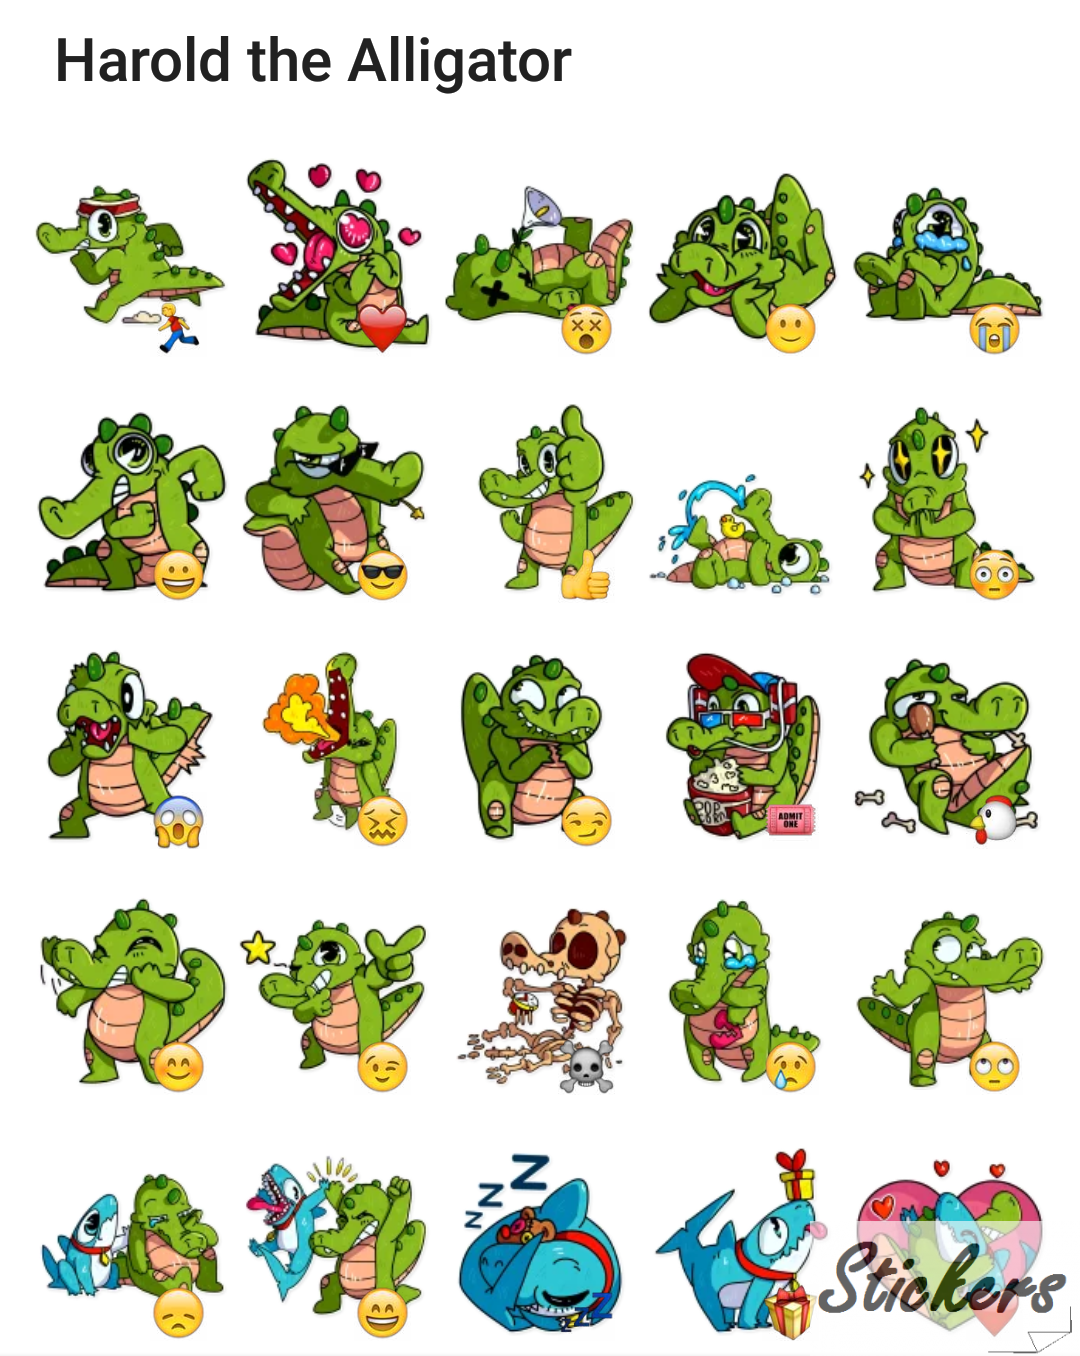 Harold the Alligator Telegram sticker set